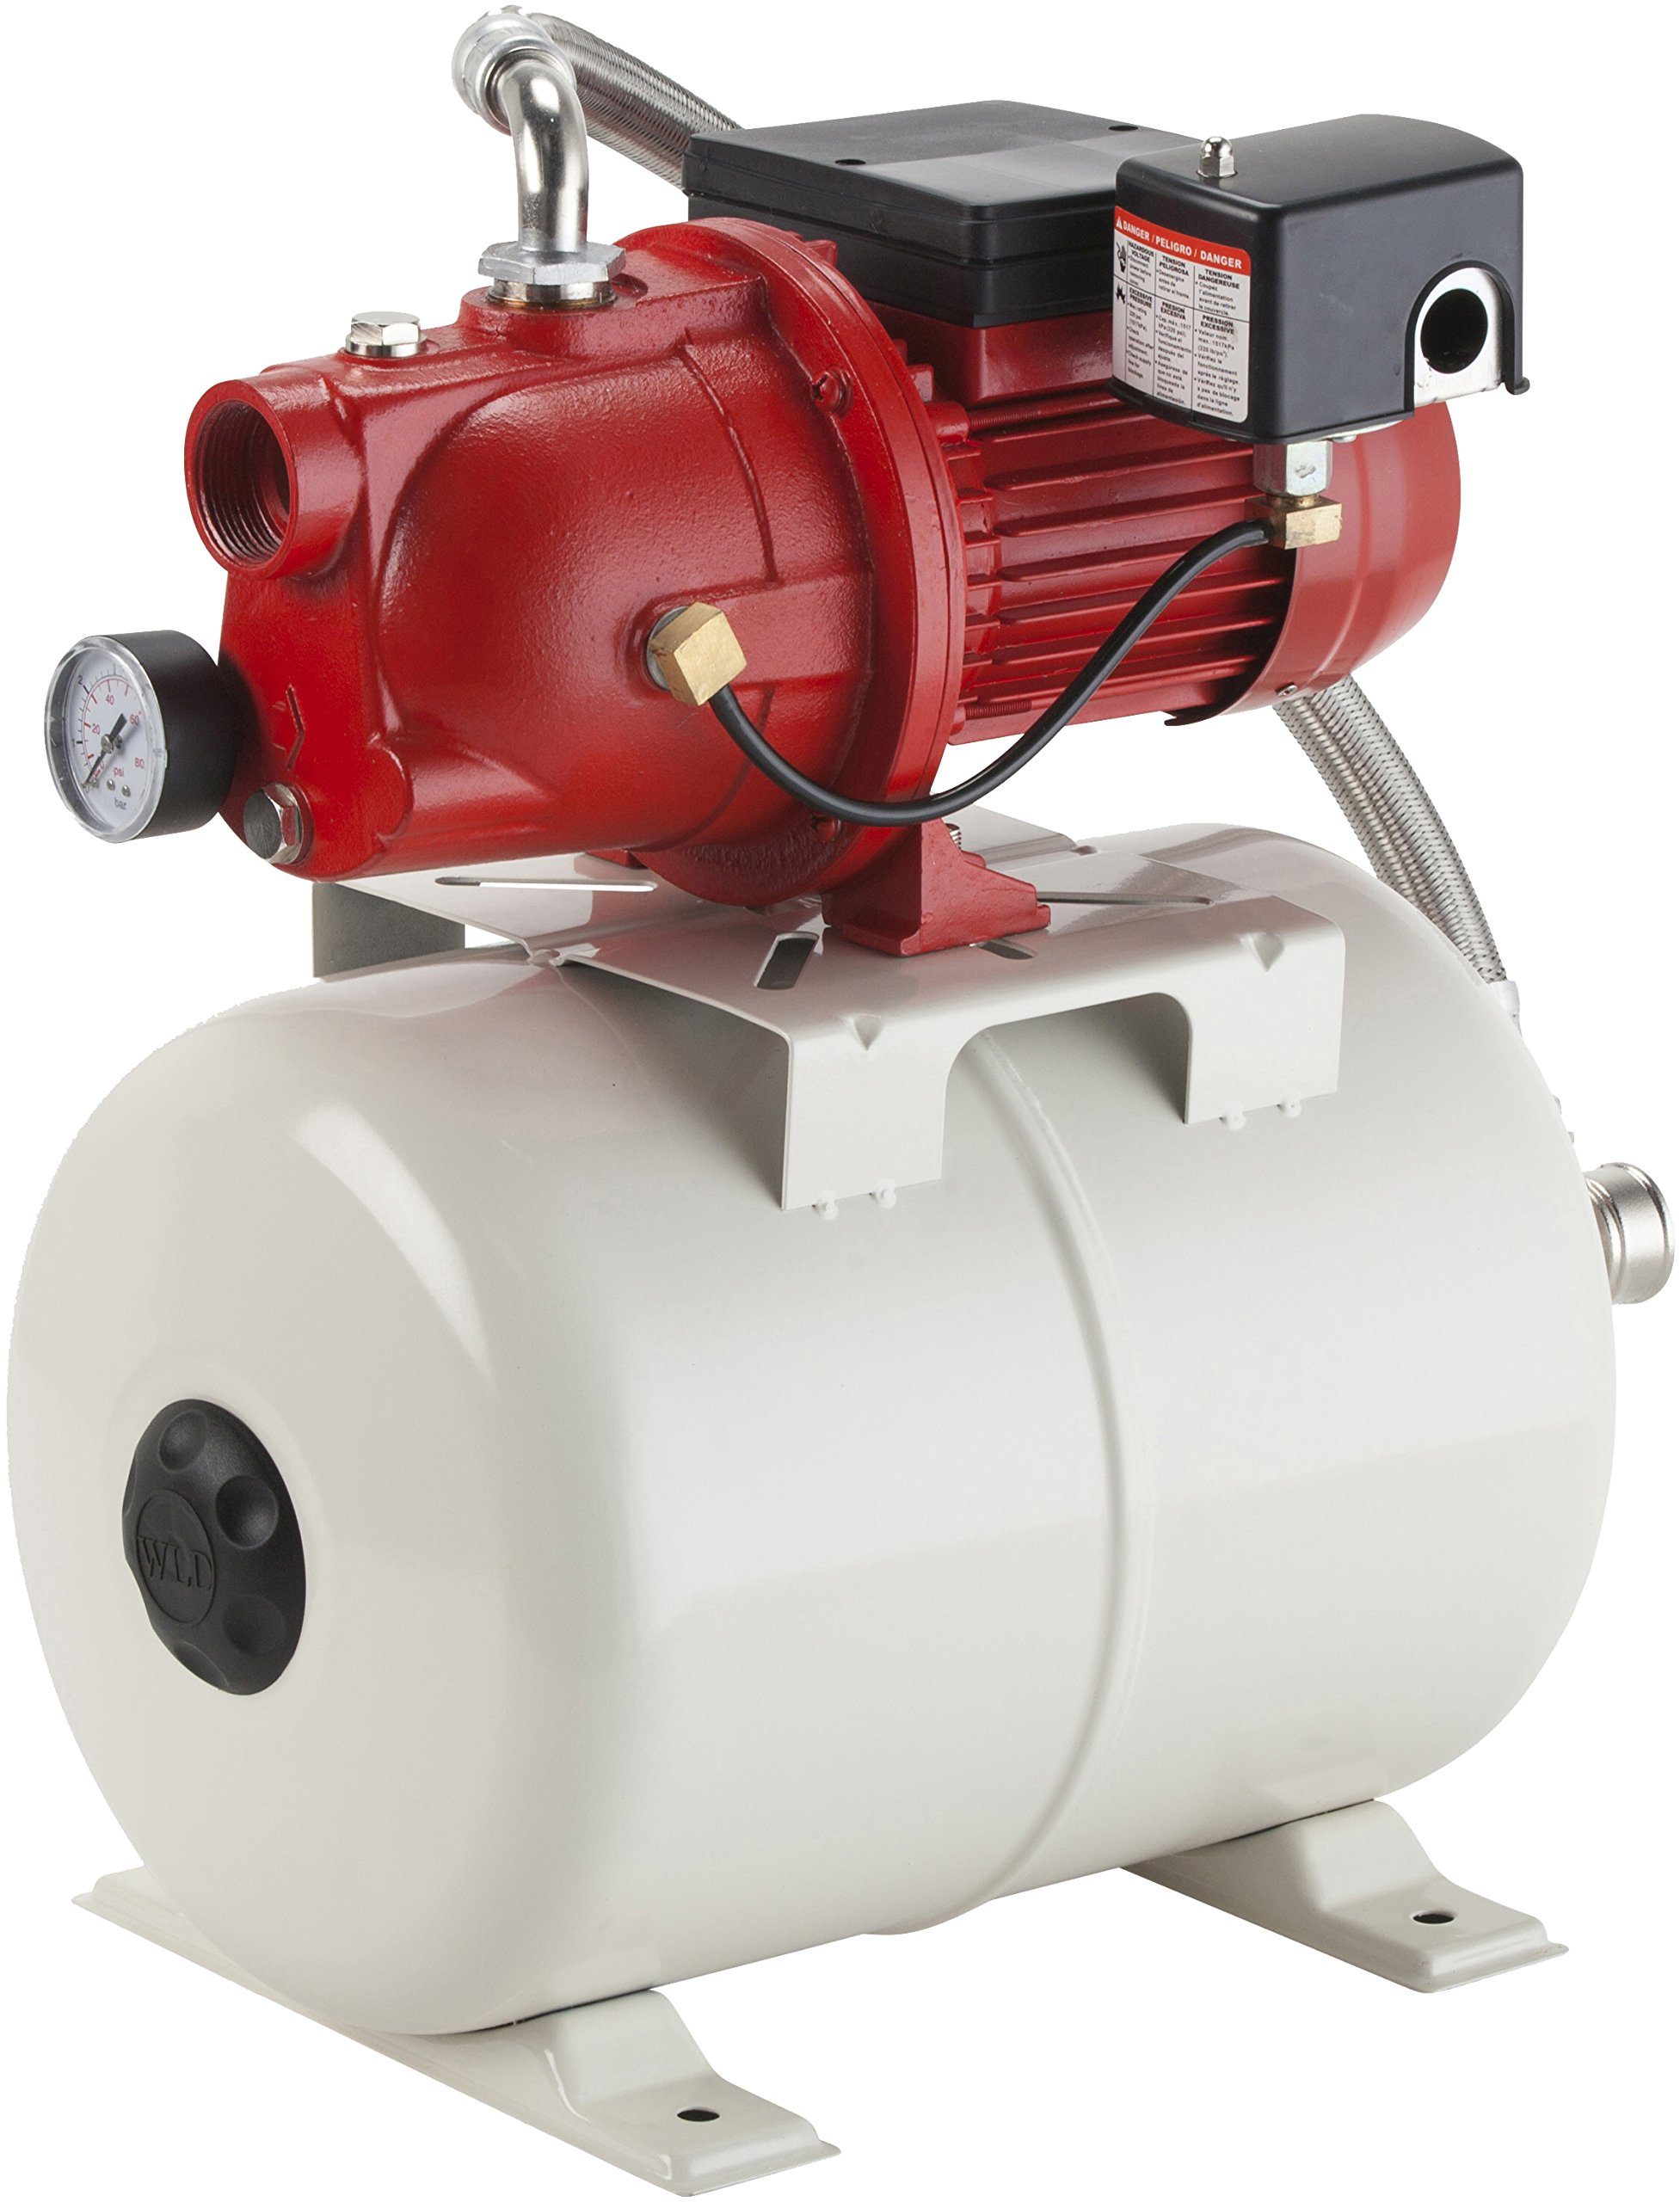 shallow well pumps amazon comred lion 97080503 shallow well jet pump and tank package, cast iron pump with pressure